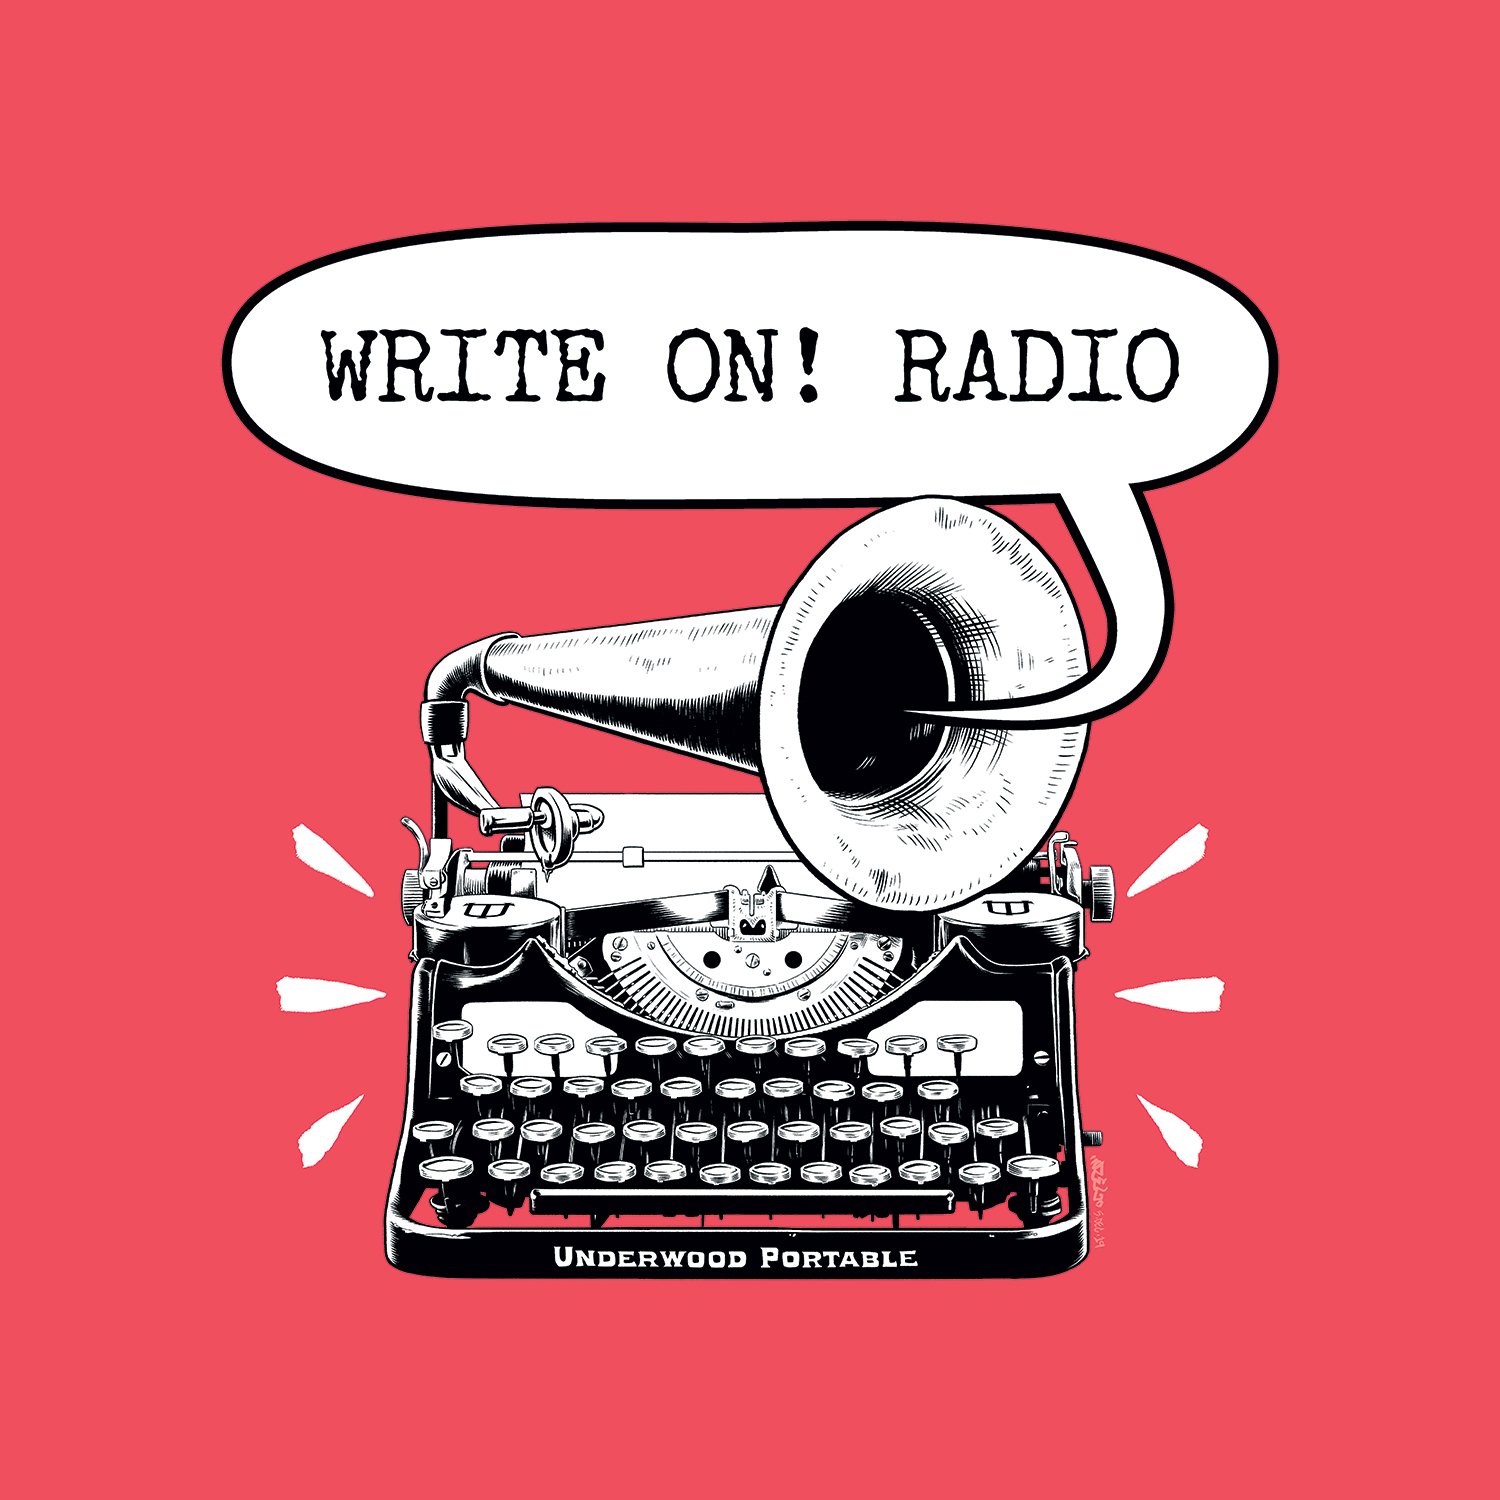 Write On! Radio – Michael Amram / Carolyn Holbrook